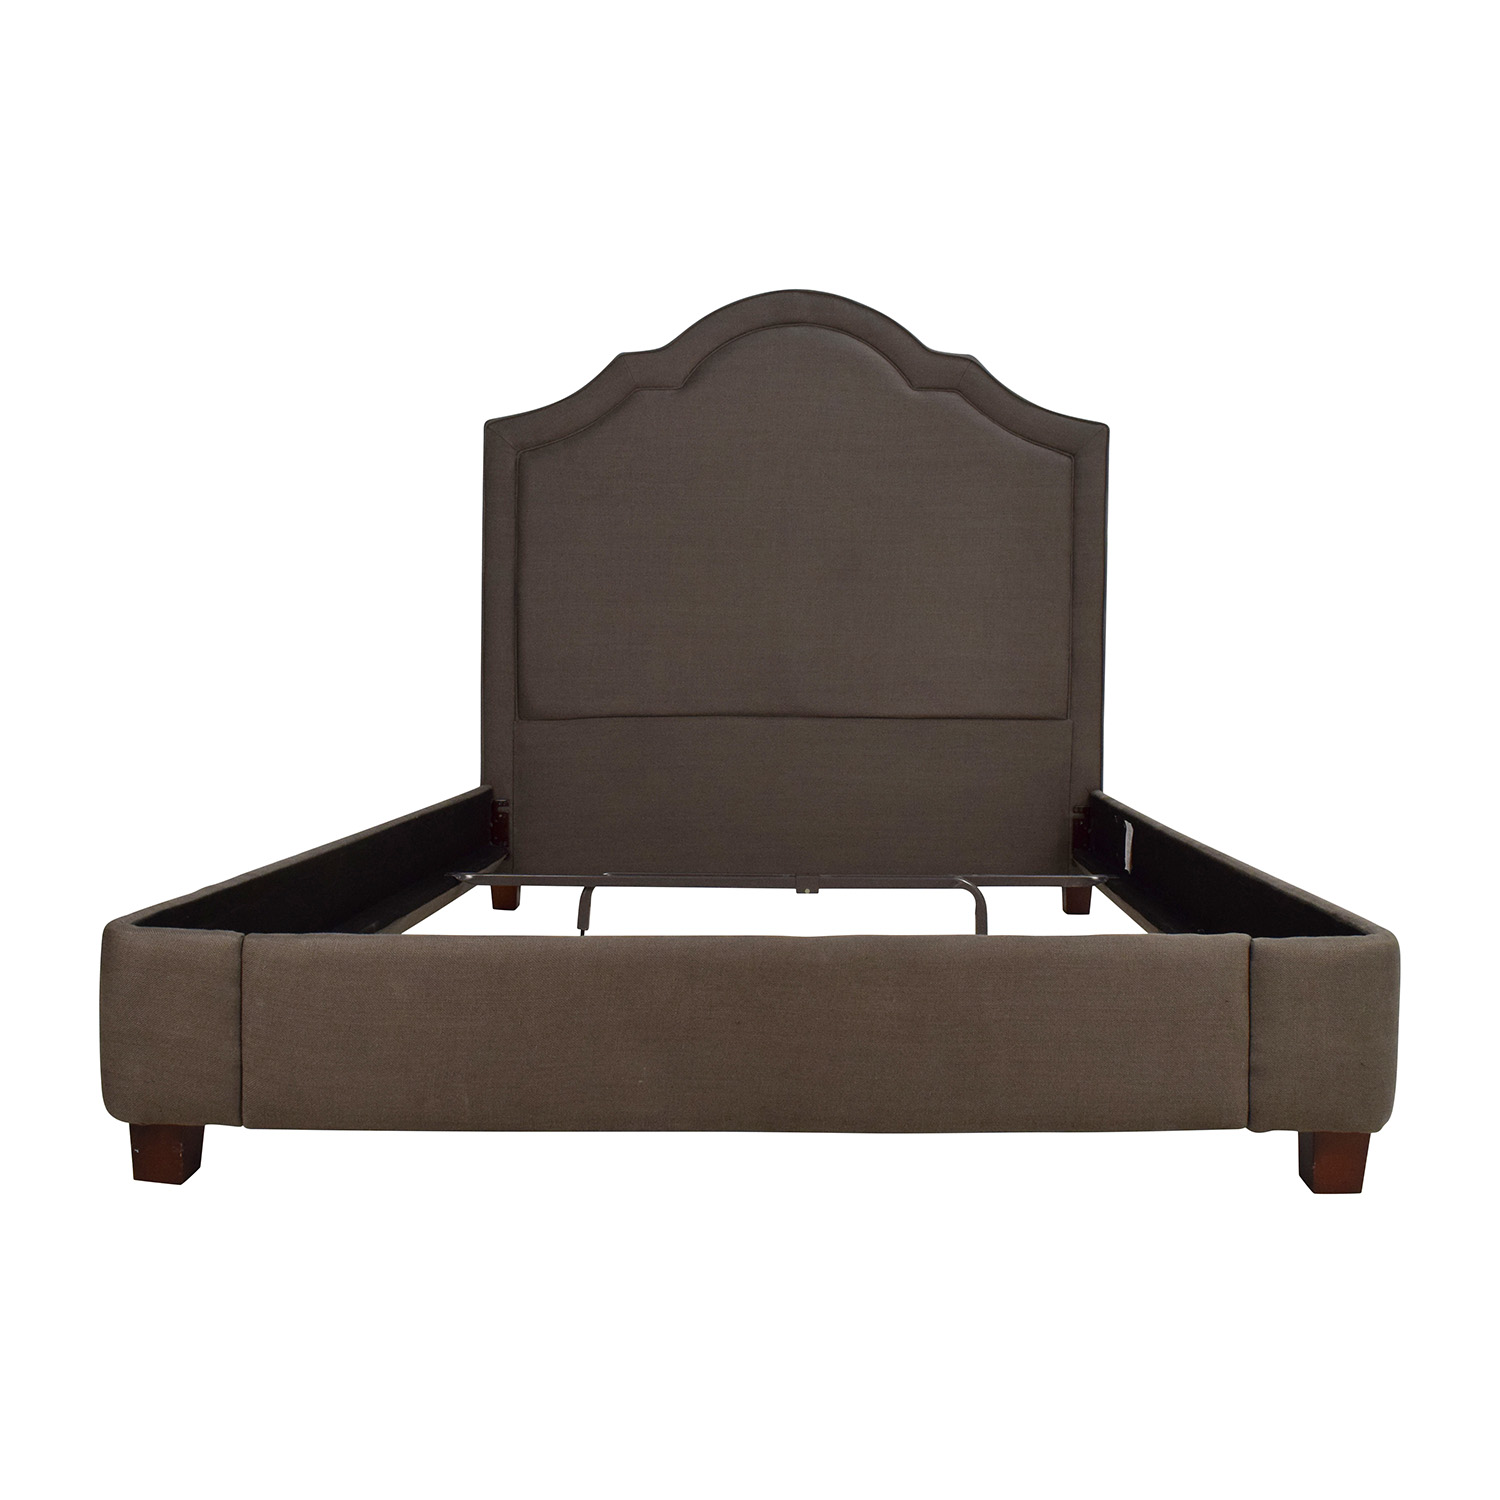 buy Restoration Hardware Restoration Hardware Jameson Queen Bed Belgian Linen Charcoal online